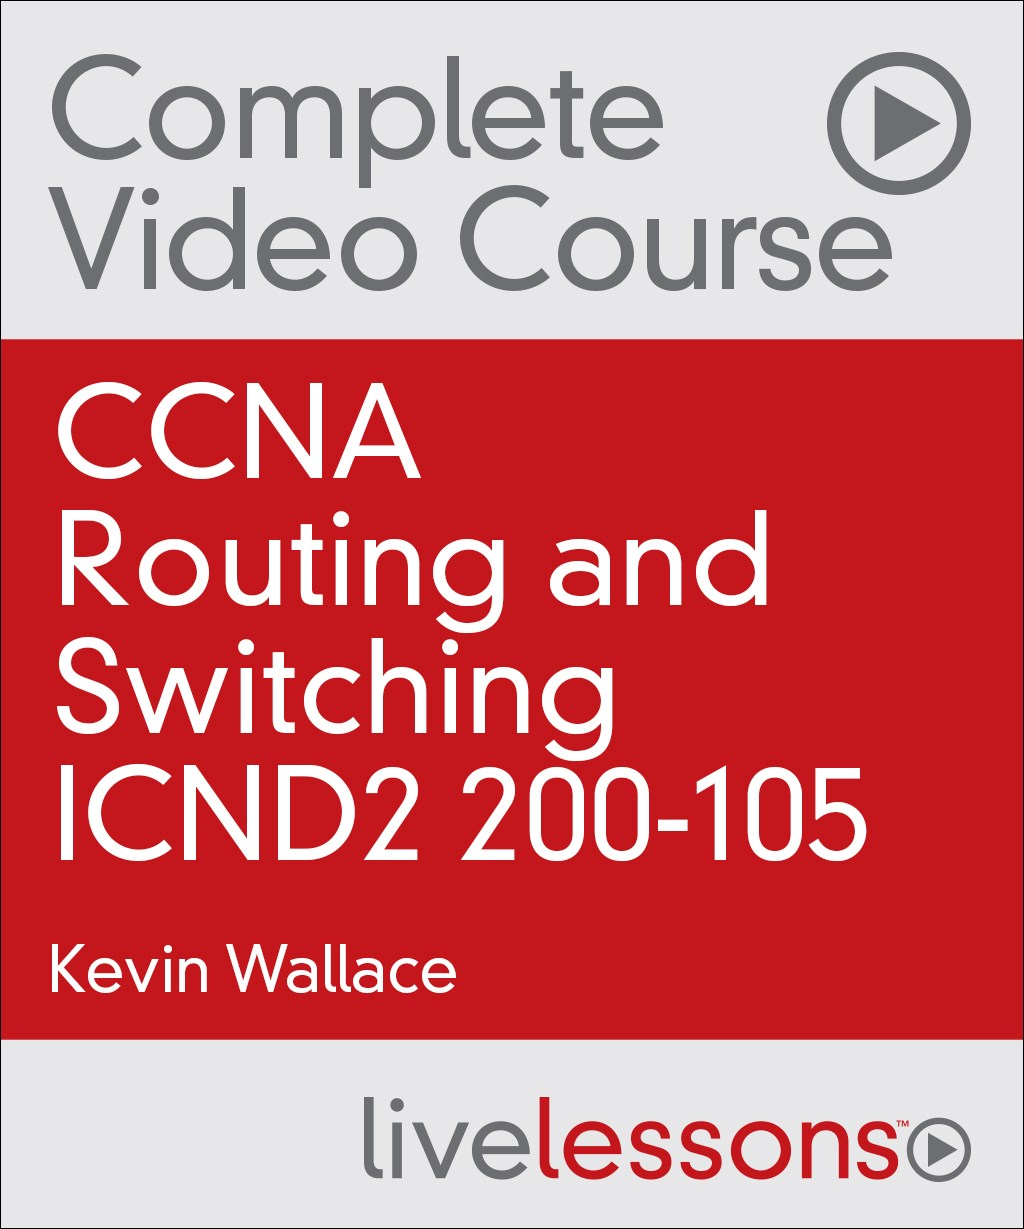 CCNA Routing and Switching ICND2 200-105 Complete Video Course with Practice Test